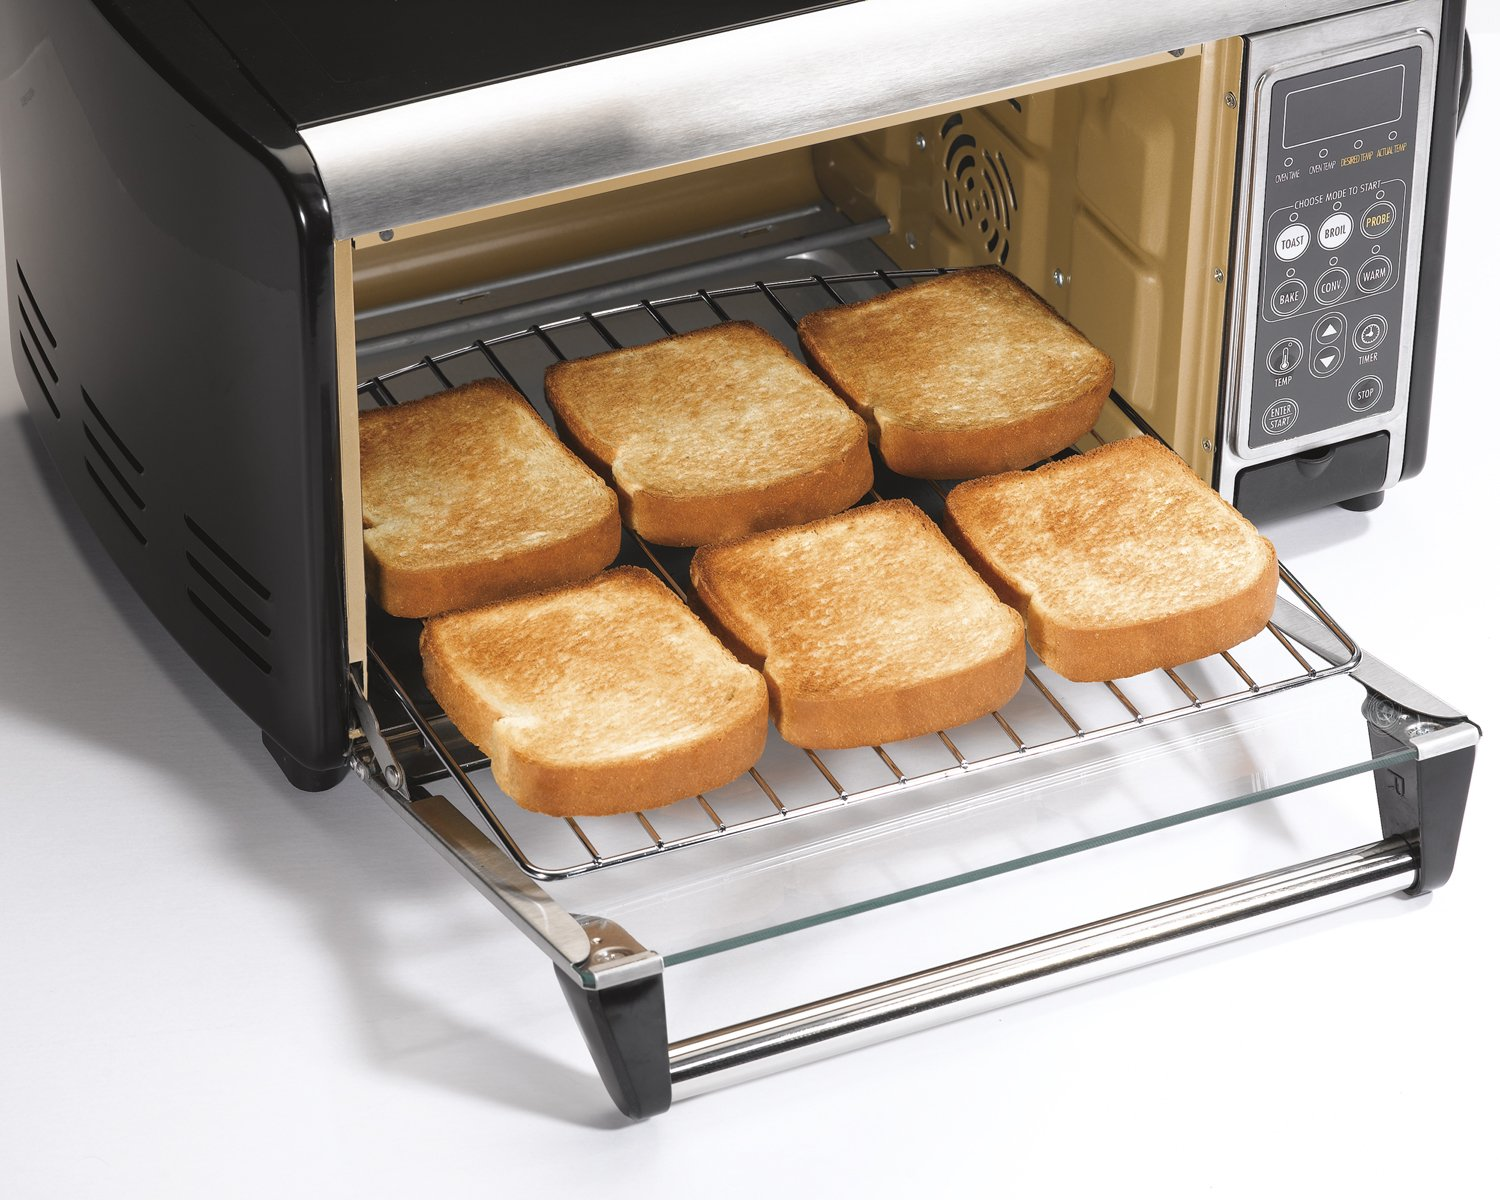 Countertop Convection Oven Chicken : Hamilton Beach 31230 Set Forget Toaster Oven with Convection Cooking